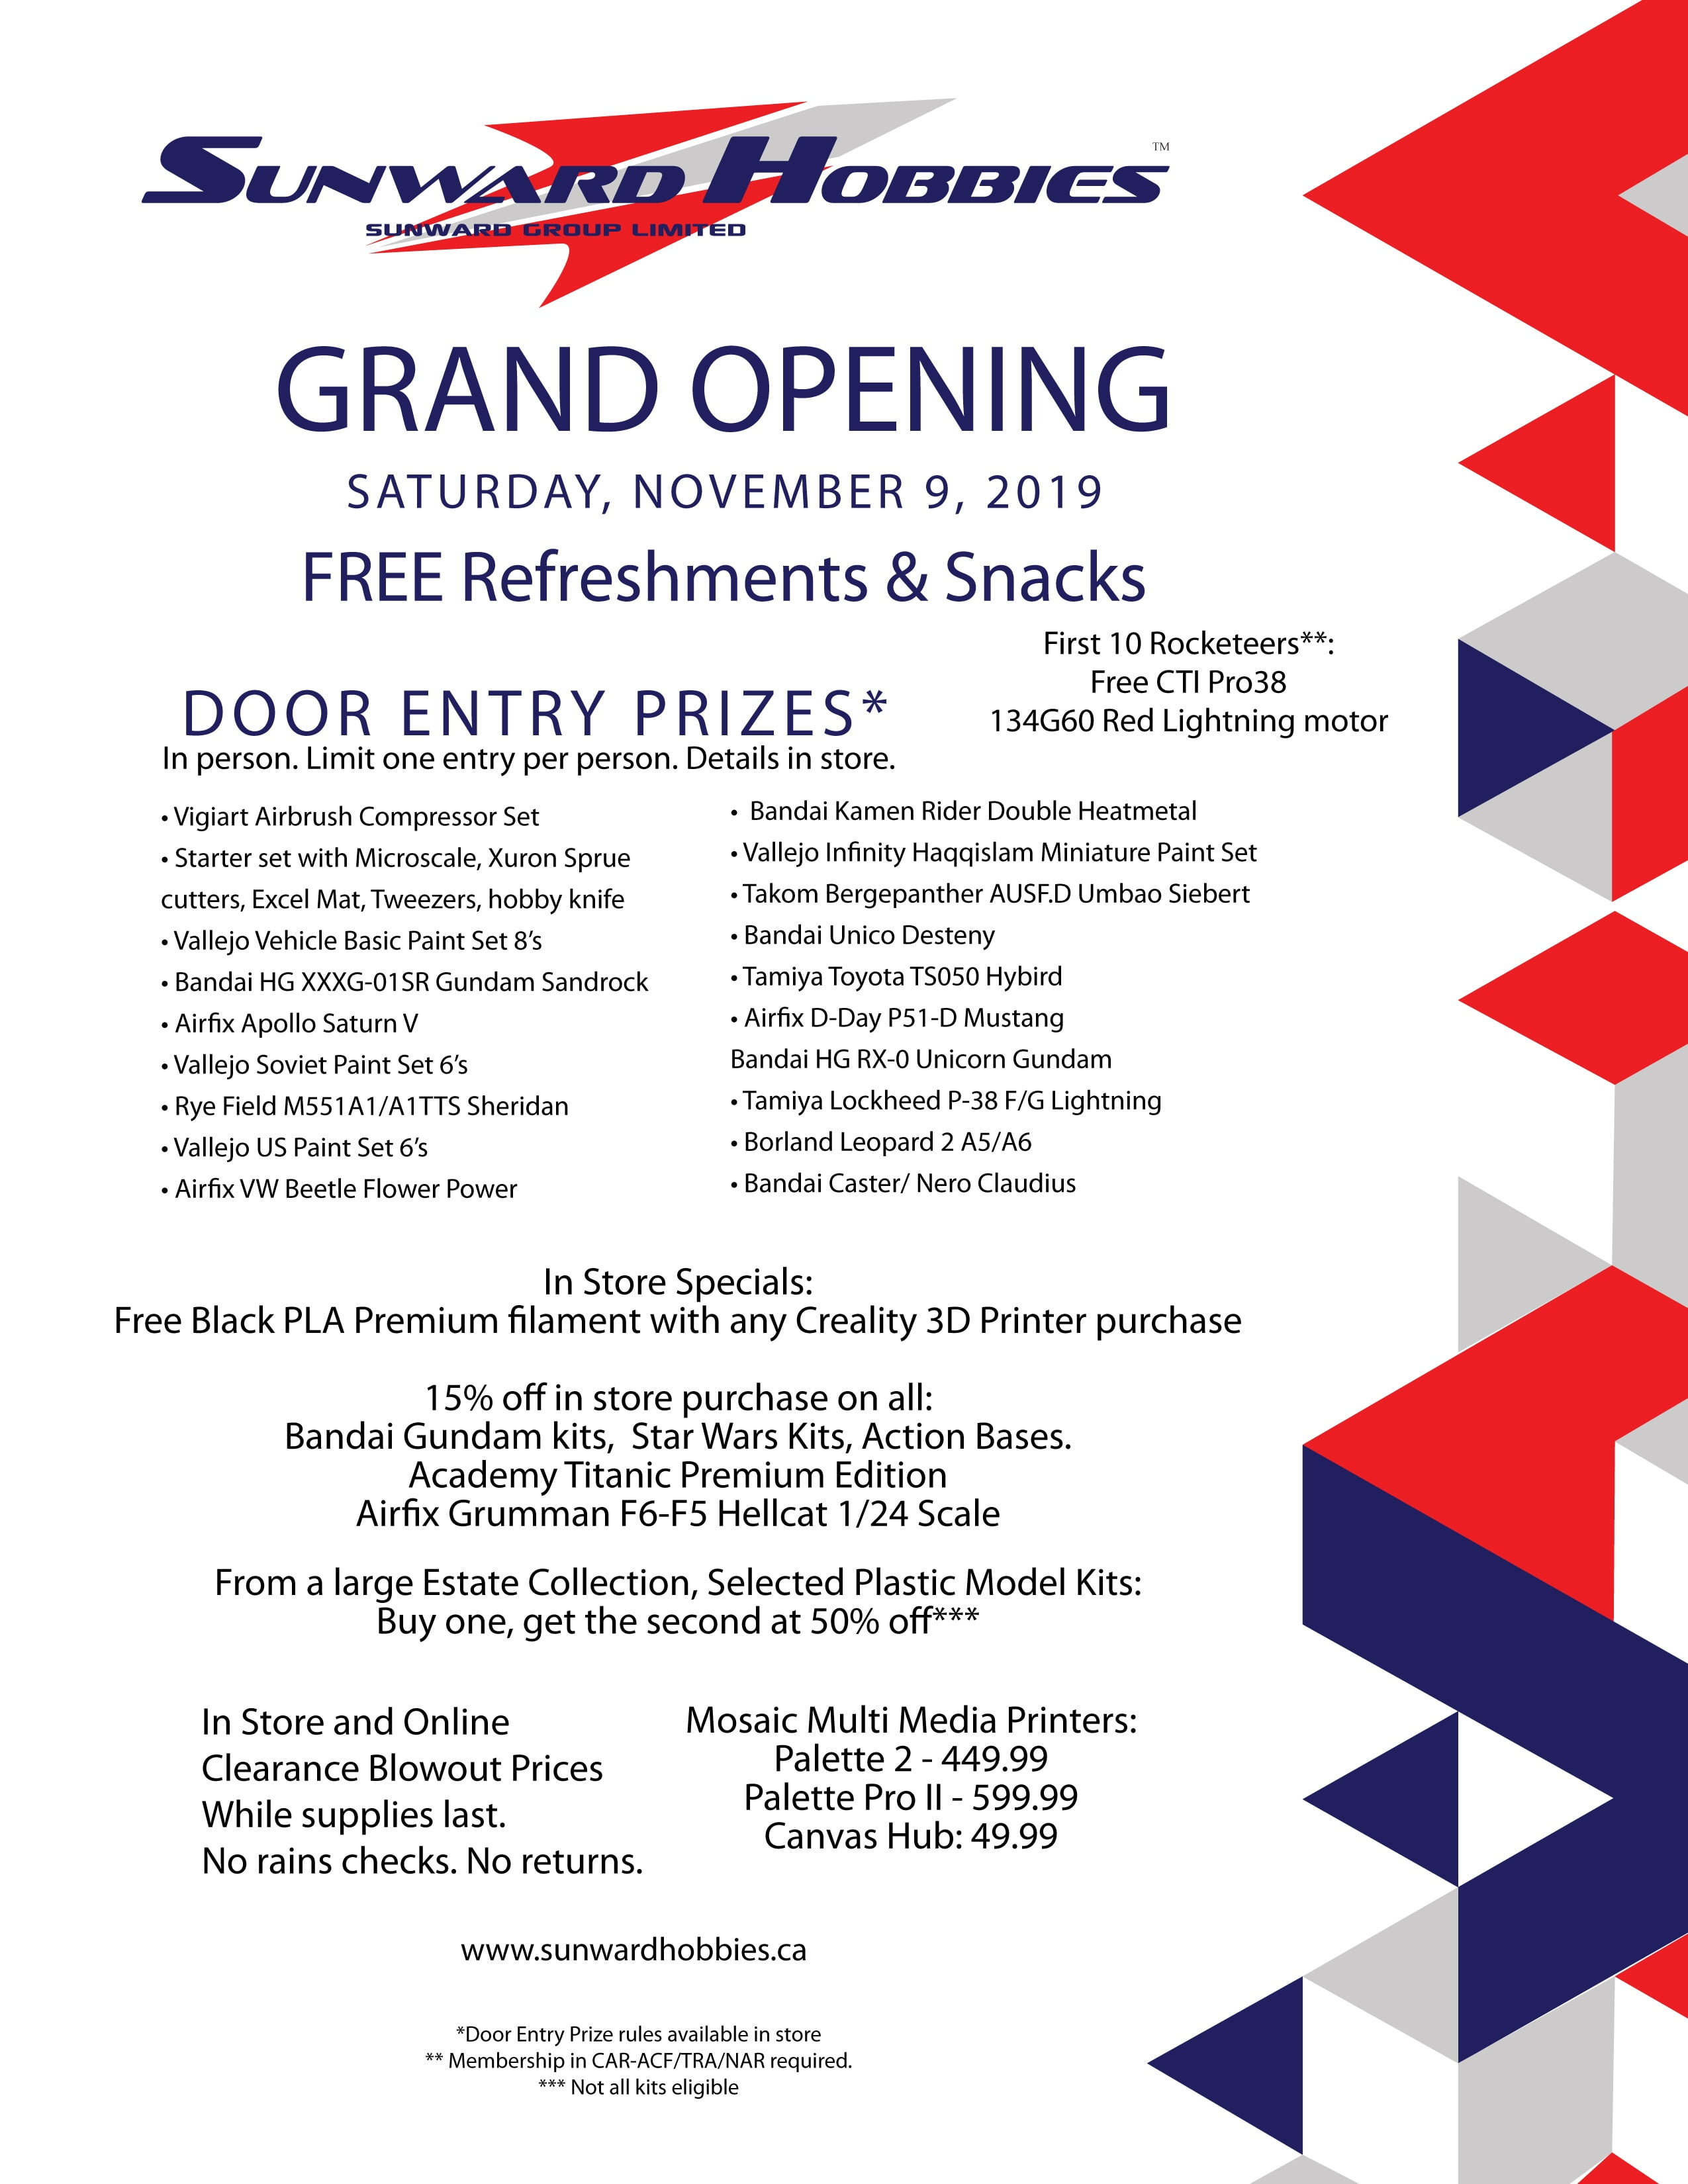 Sunward Official Grand Opening Saturday November 9 2019